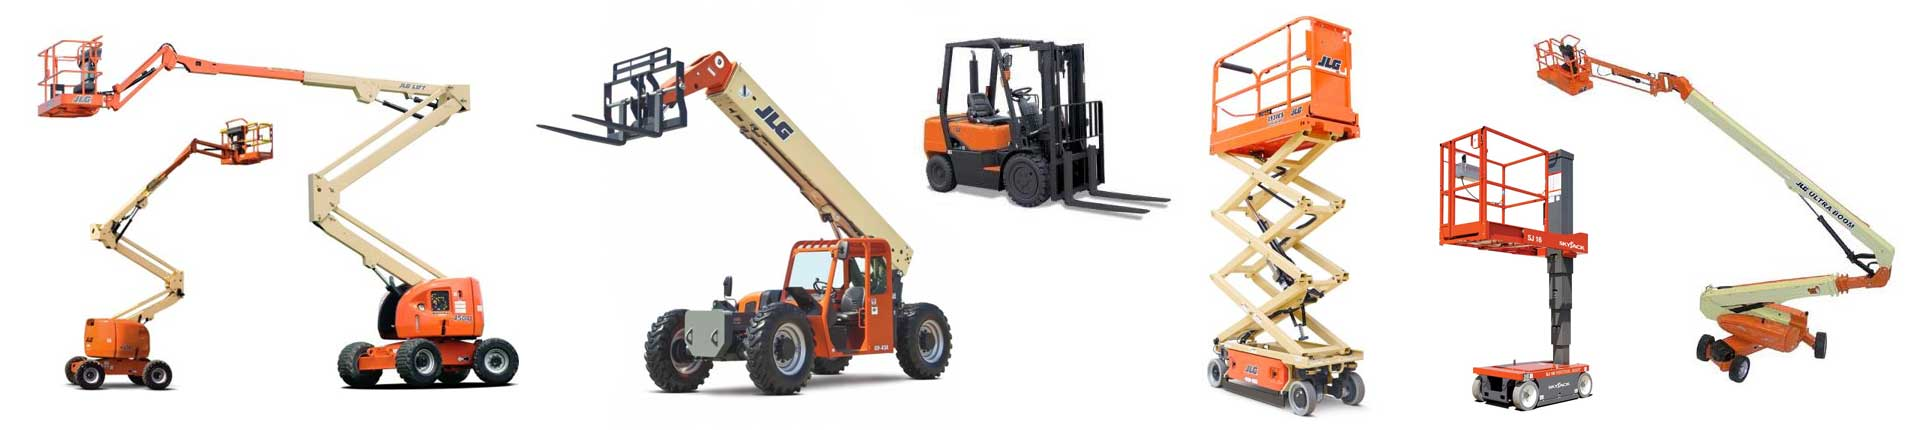 Equipment & tool rentals in Southeast Idaho